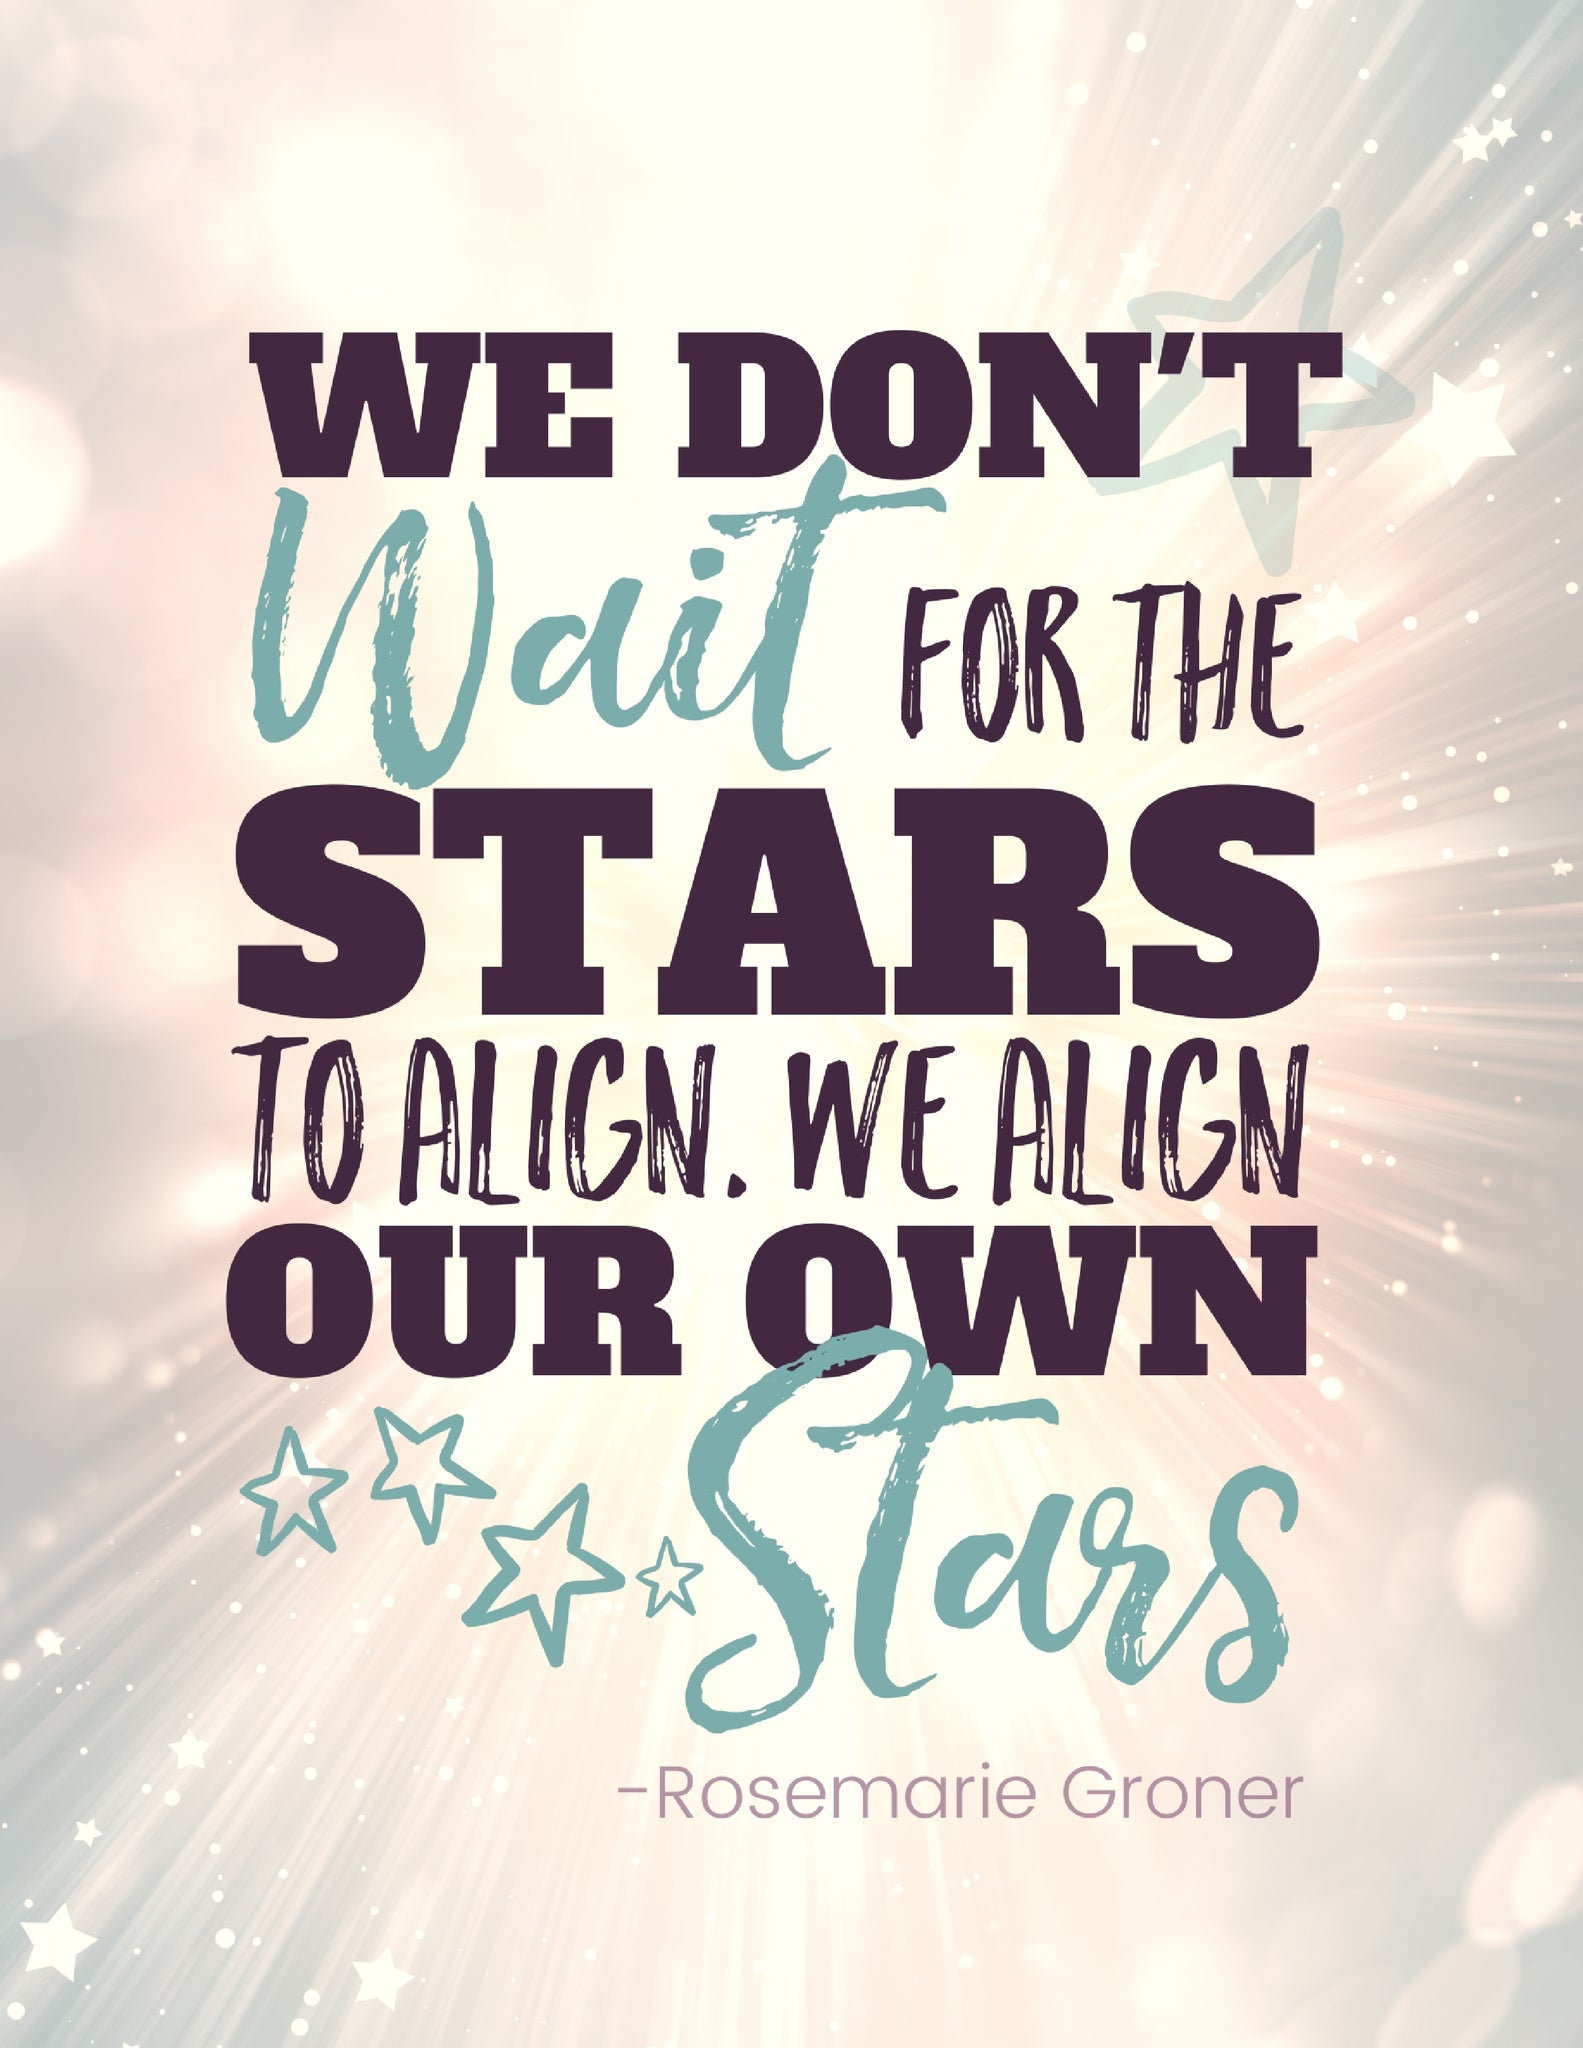 Stars Align Motivational Art Prints and Mobile Wallpaper